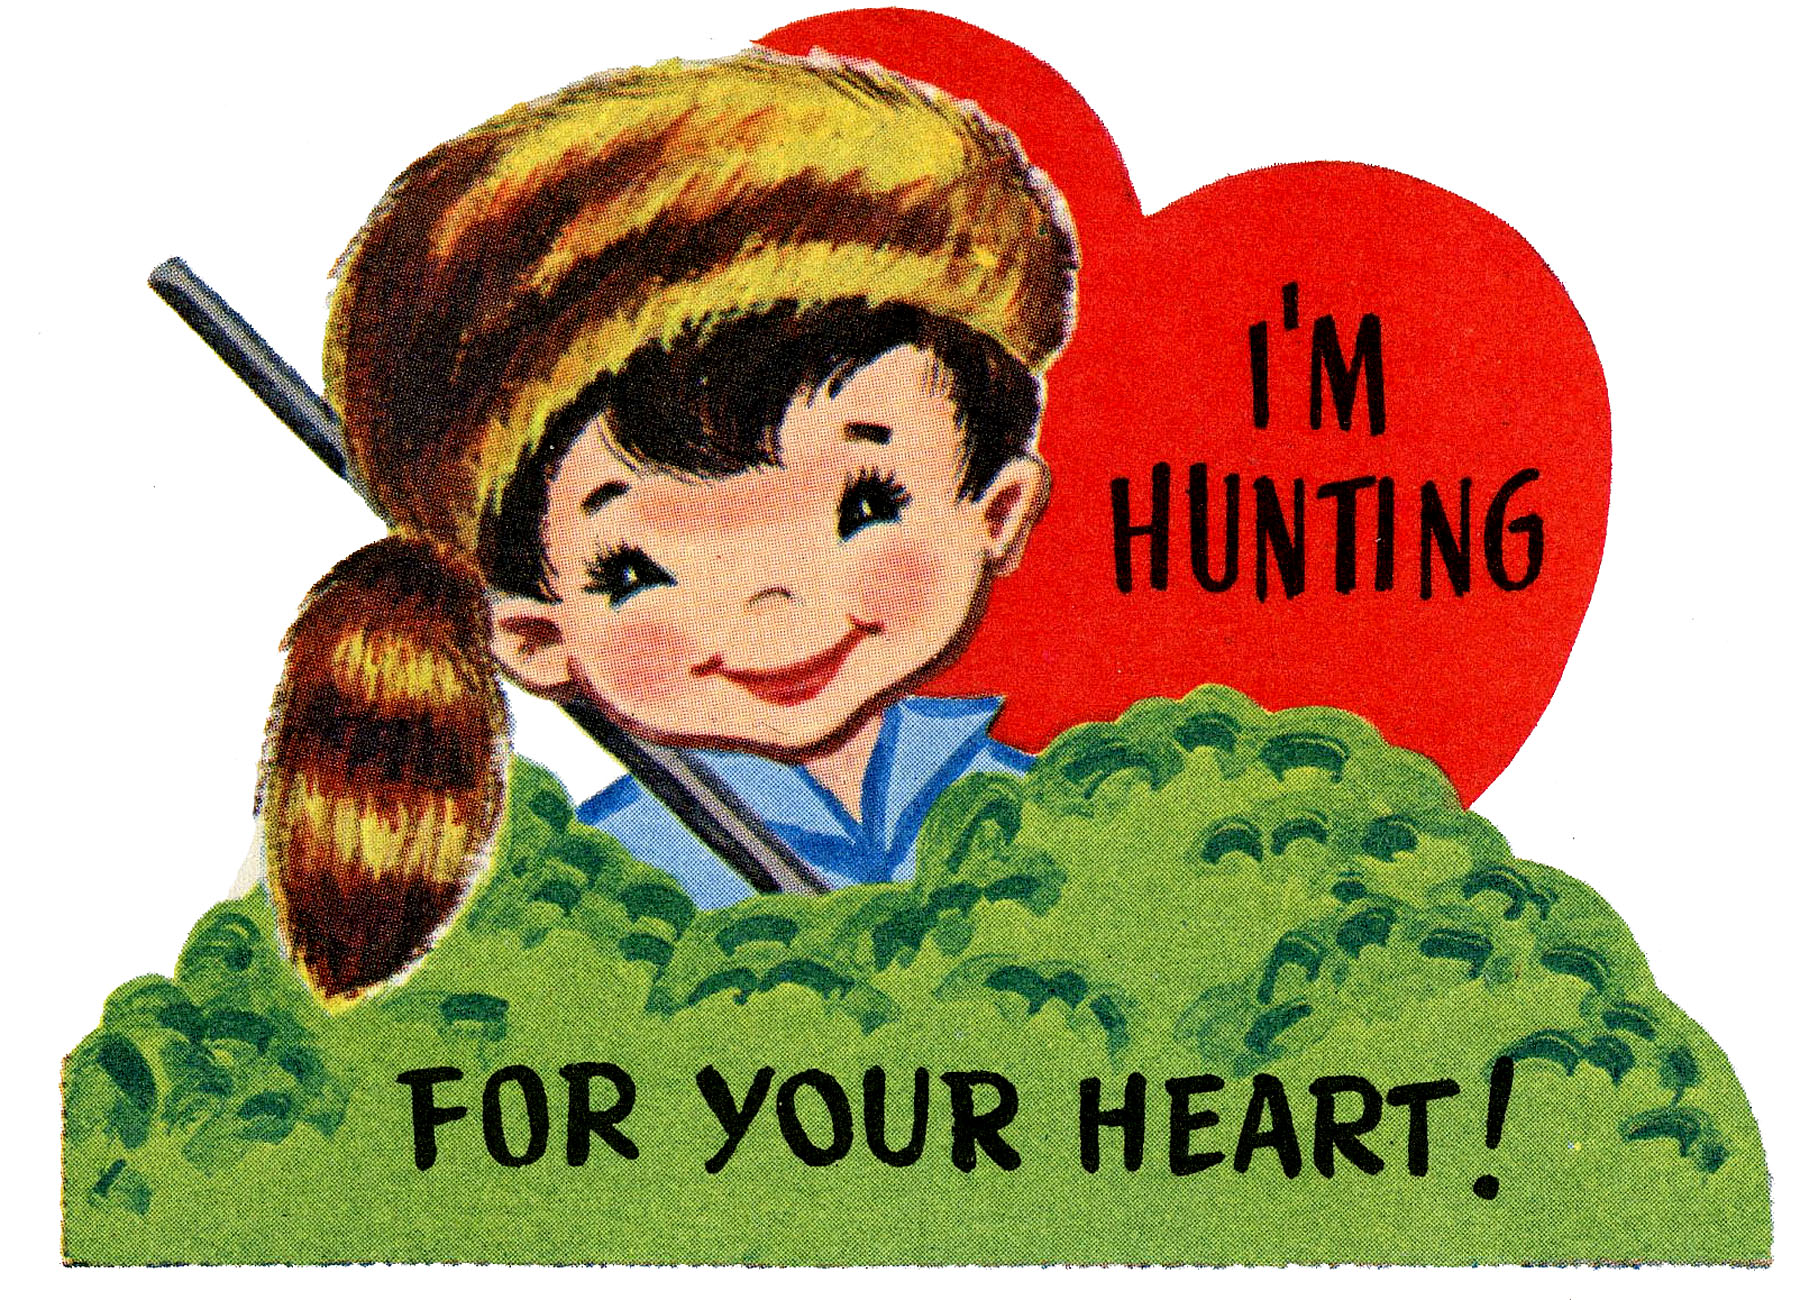 Retro Valentine Boy For Your Heart Picture